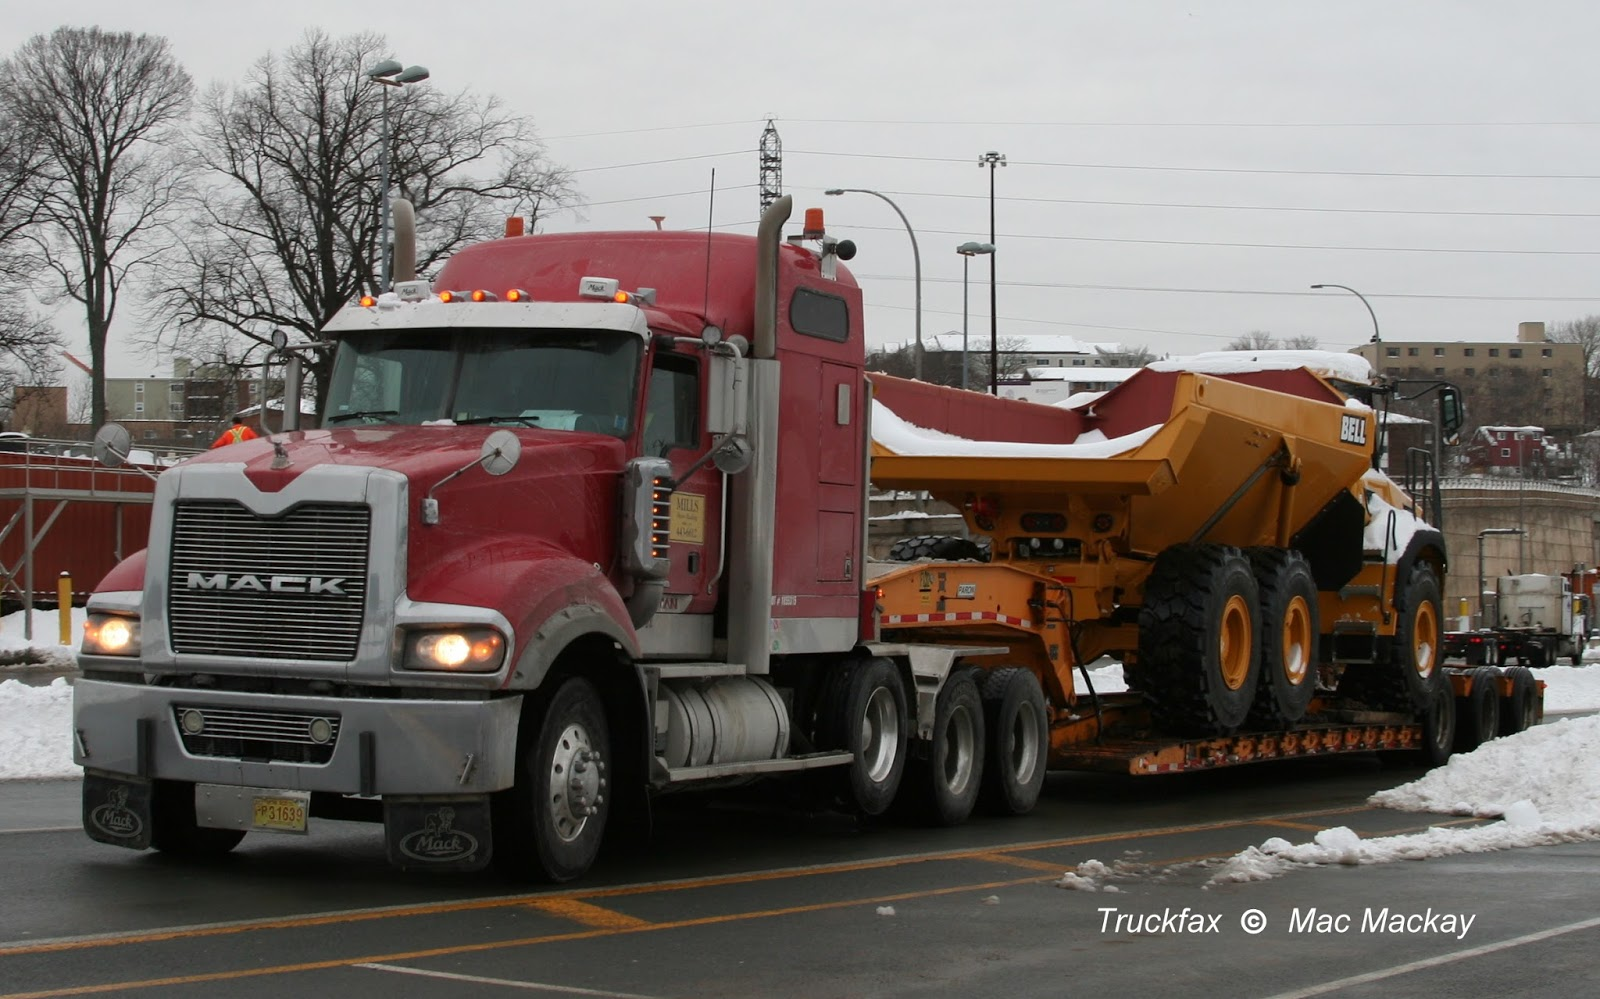 hight resolution of mills big mack titan and paron trailer was on the road today hauling one of the imported bell articulated off road dump trucks this one a b30e which